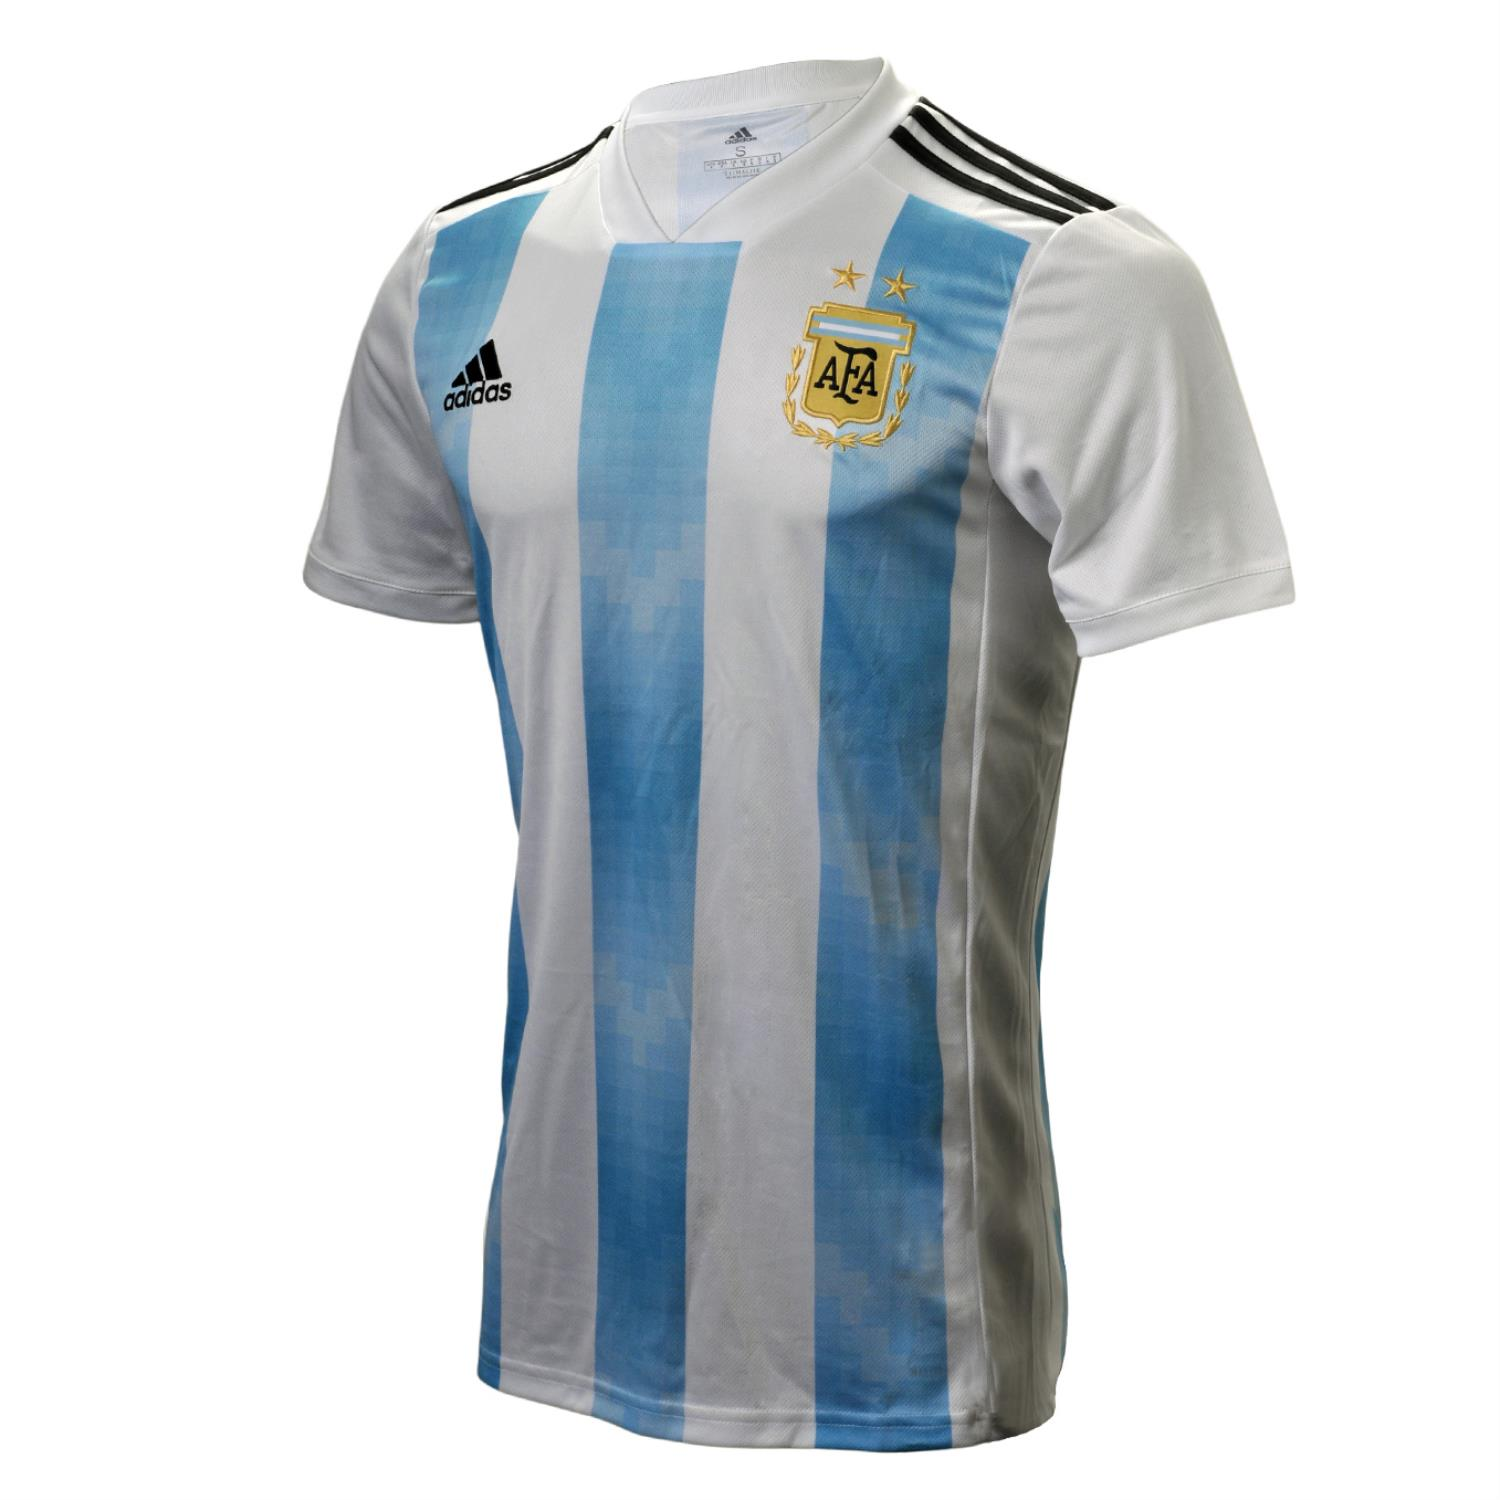 af1a30c0790 US  15.8 - Argentina FIFA World Cup 2018 Home Jersey Men -  www.yajerseyclub.com